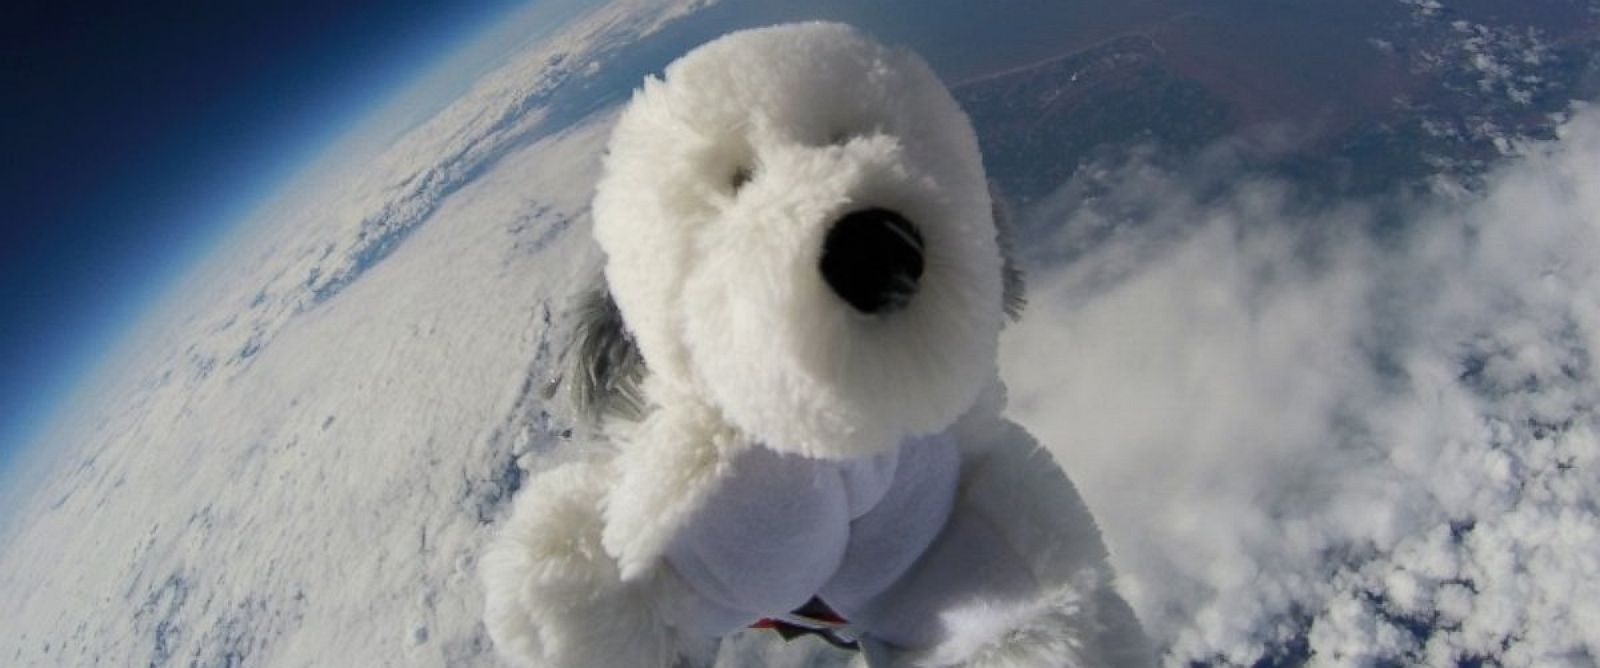 stuffed animal makes epic journey to the edge of space in amazing